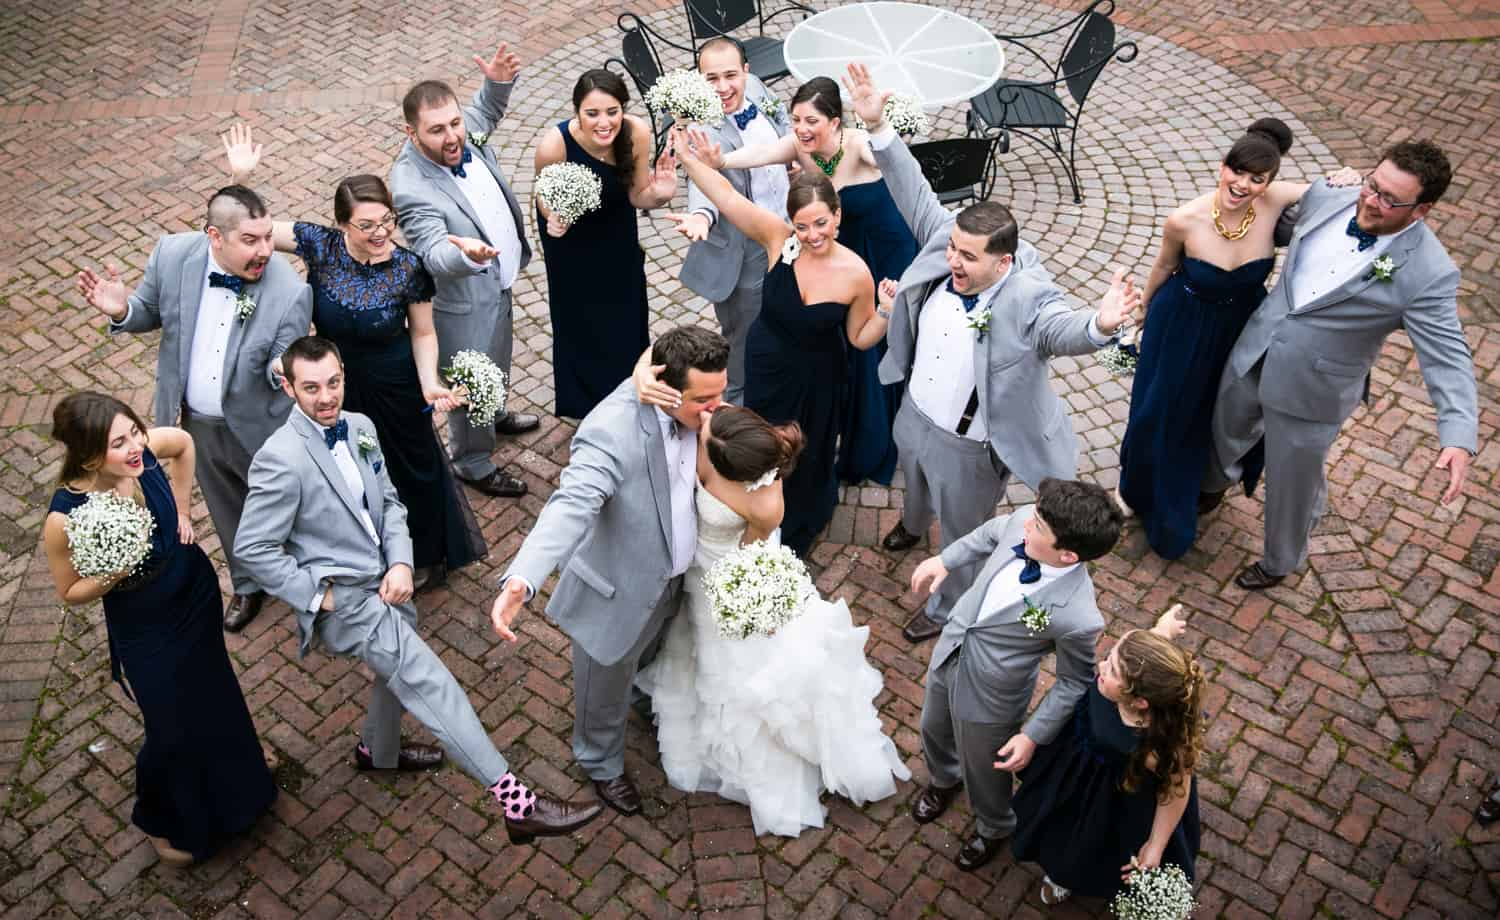 View down on bridal party cheering bride and groom dancing